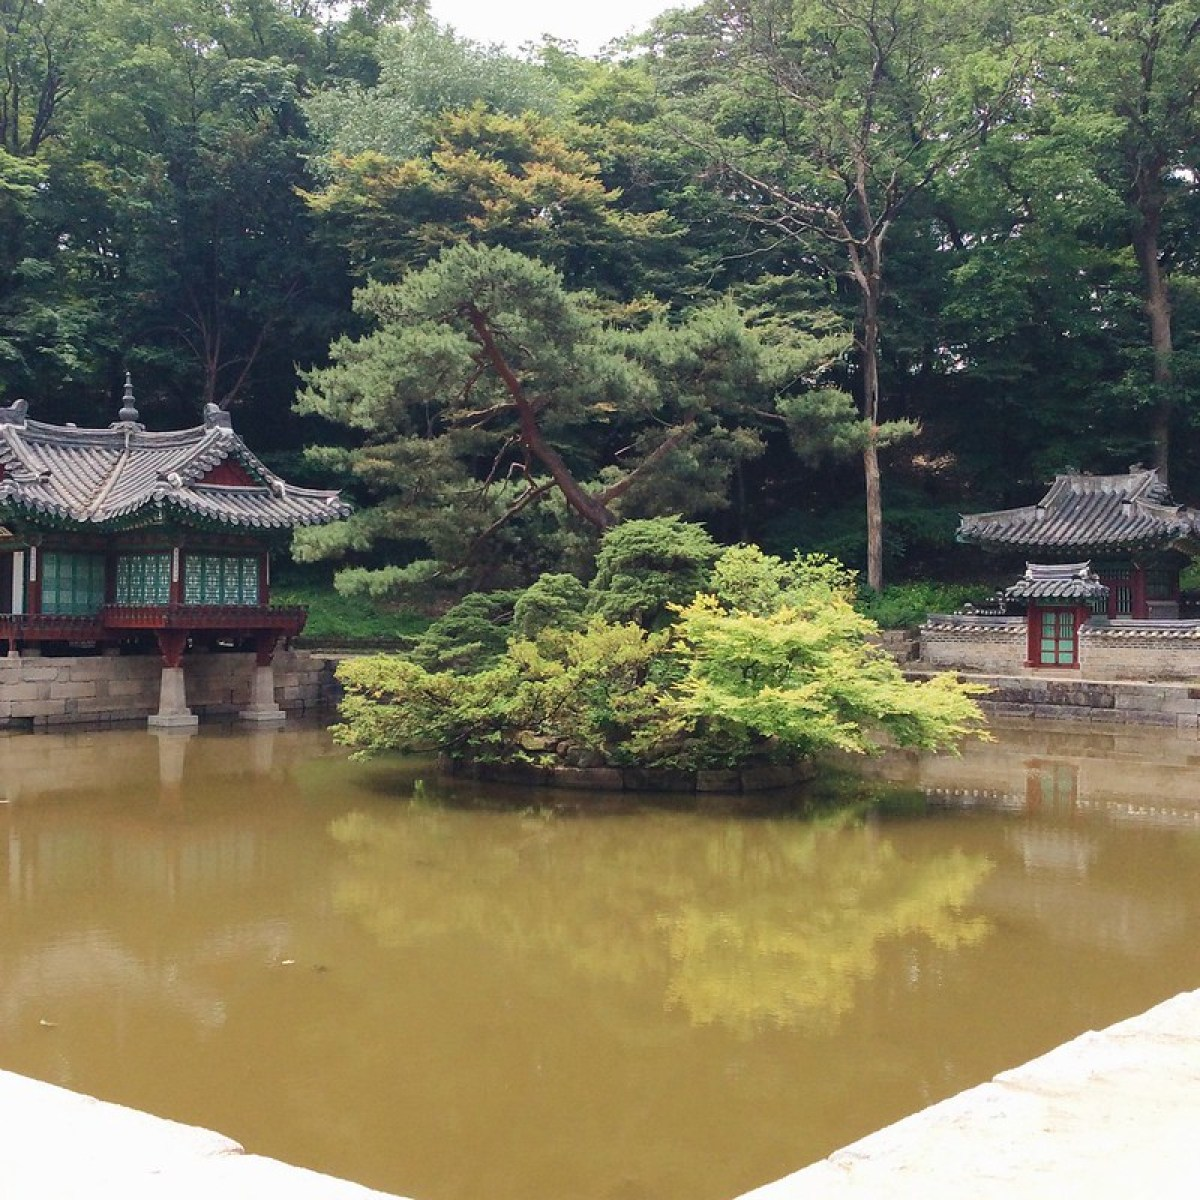 A bonsai like tree in the middle of a pond in Huwon